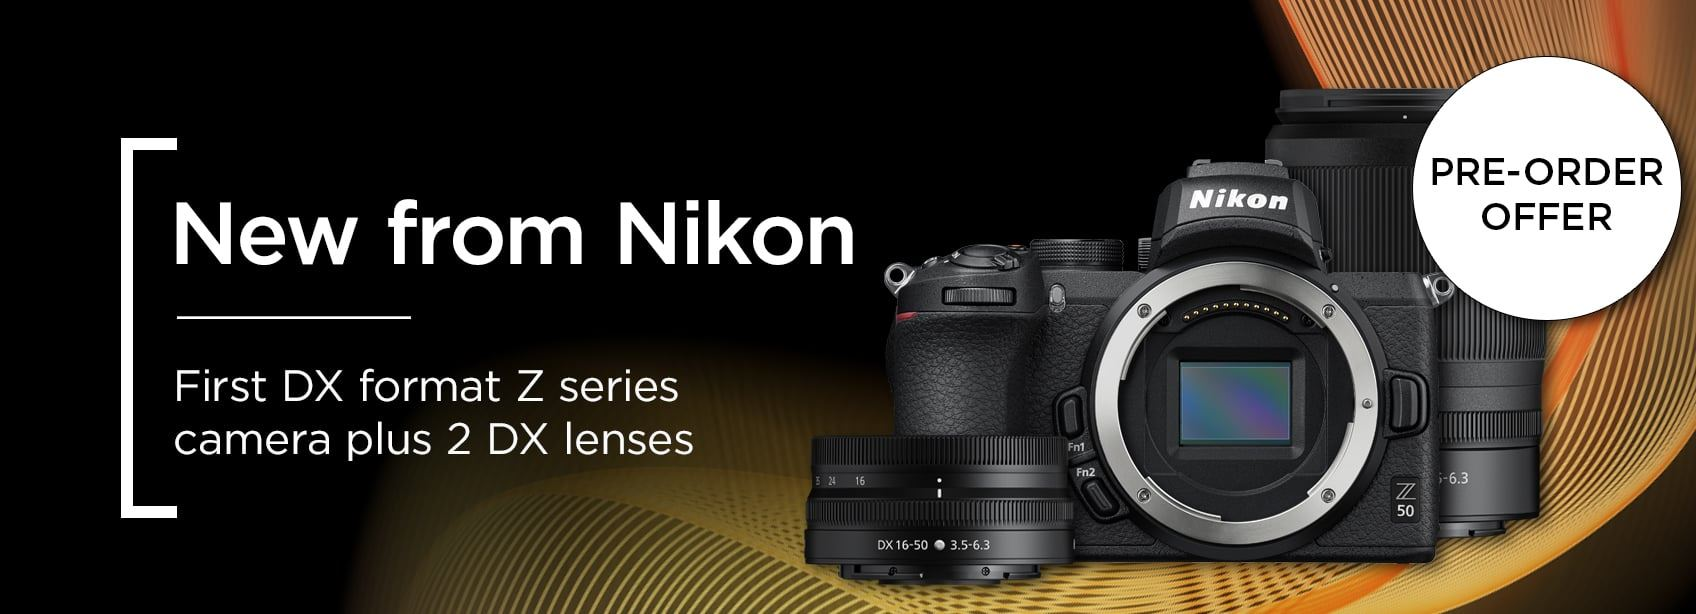 New from Nikon |  First DX format Z series camera plus 2 DX lenses